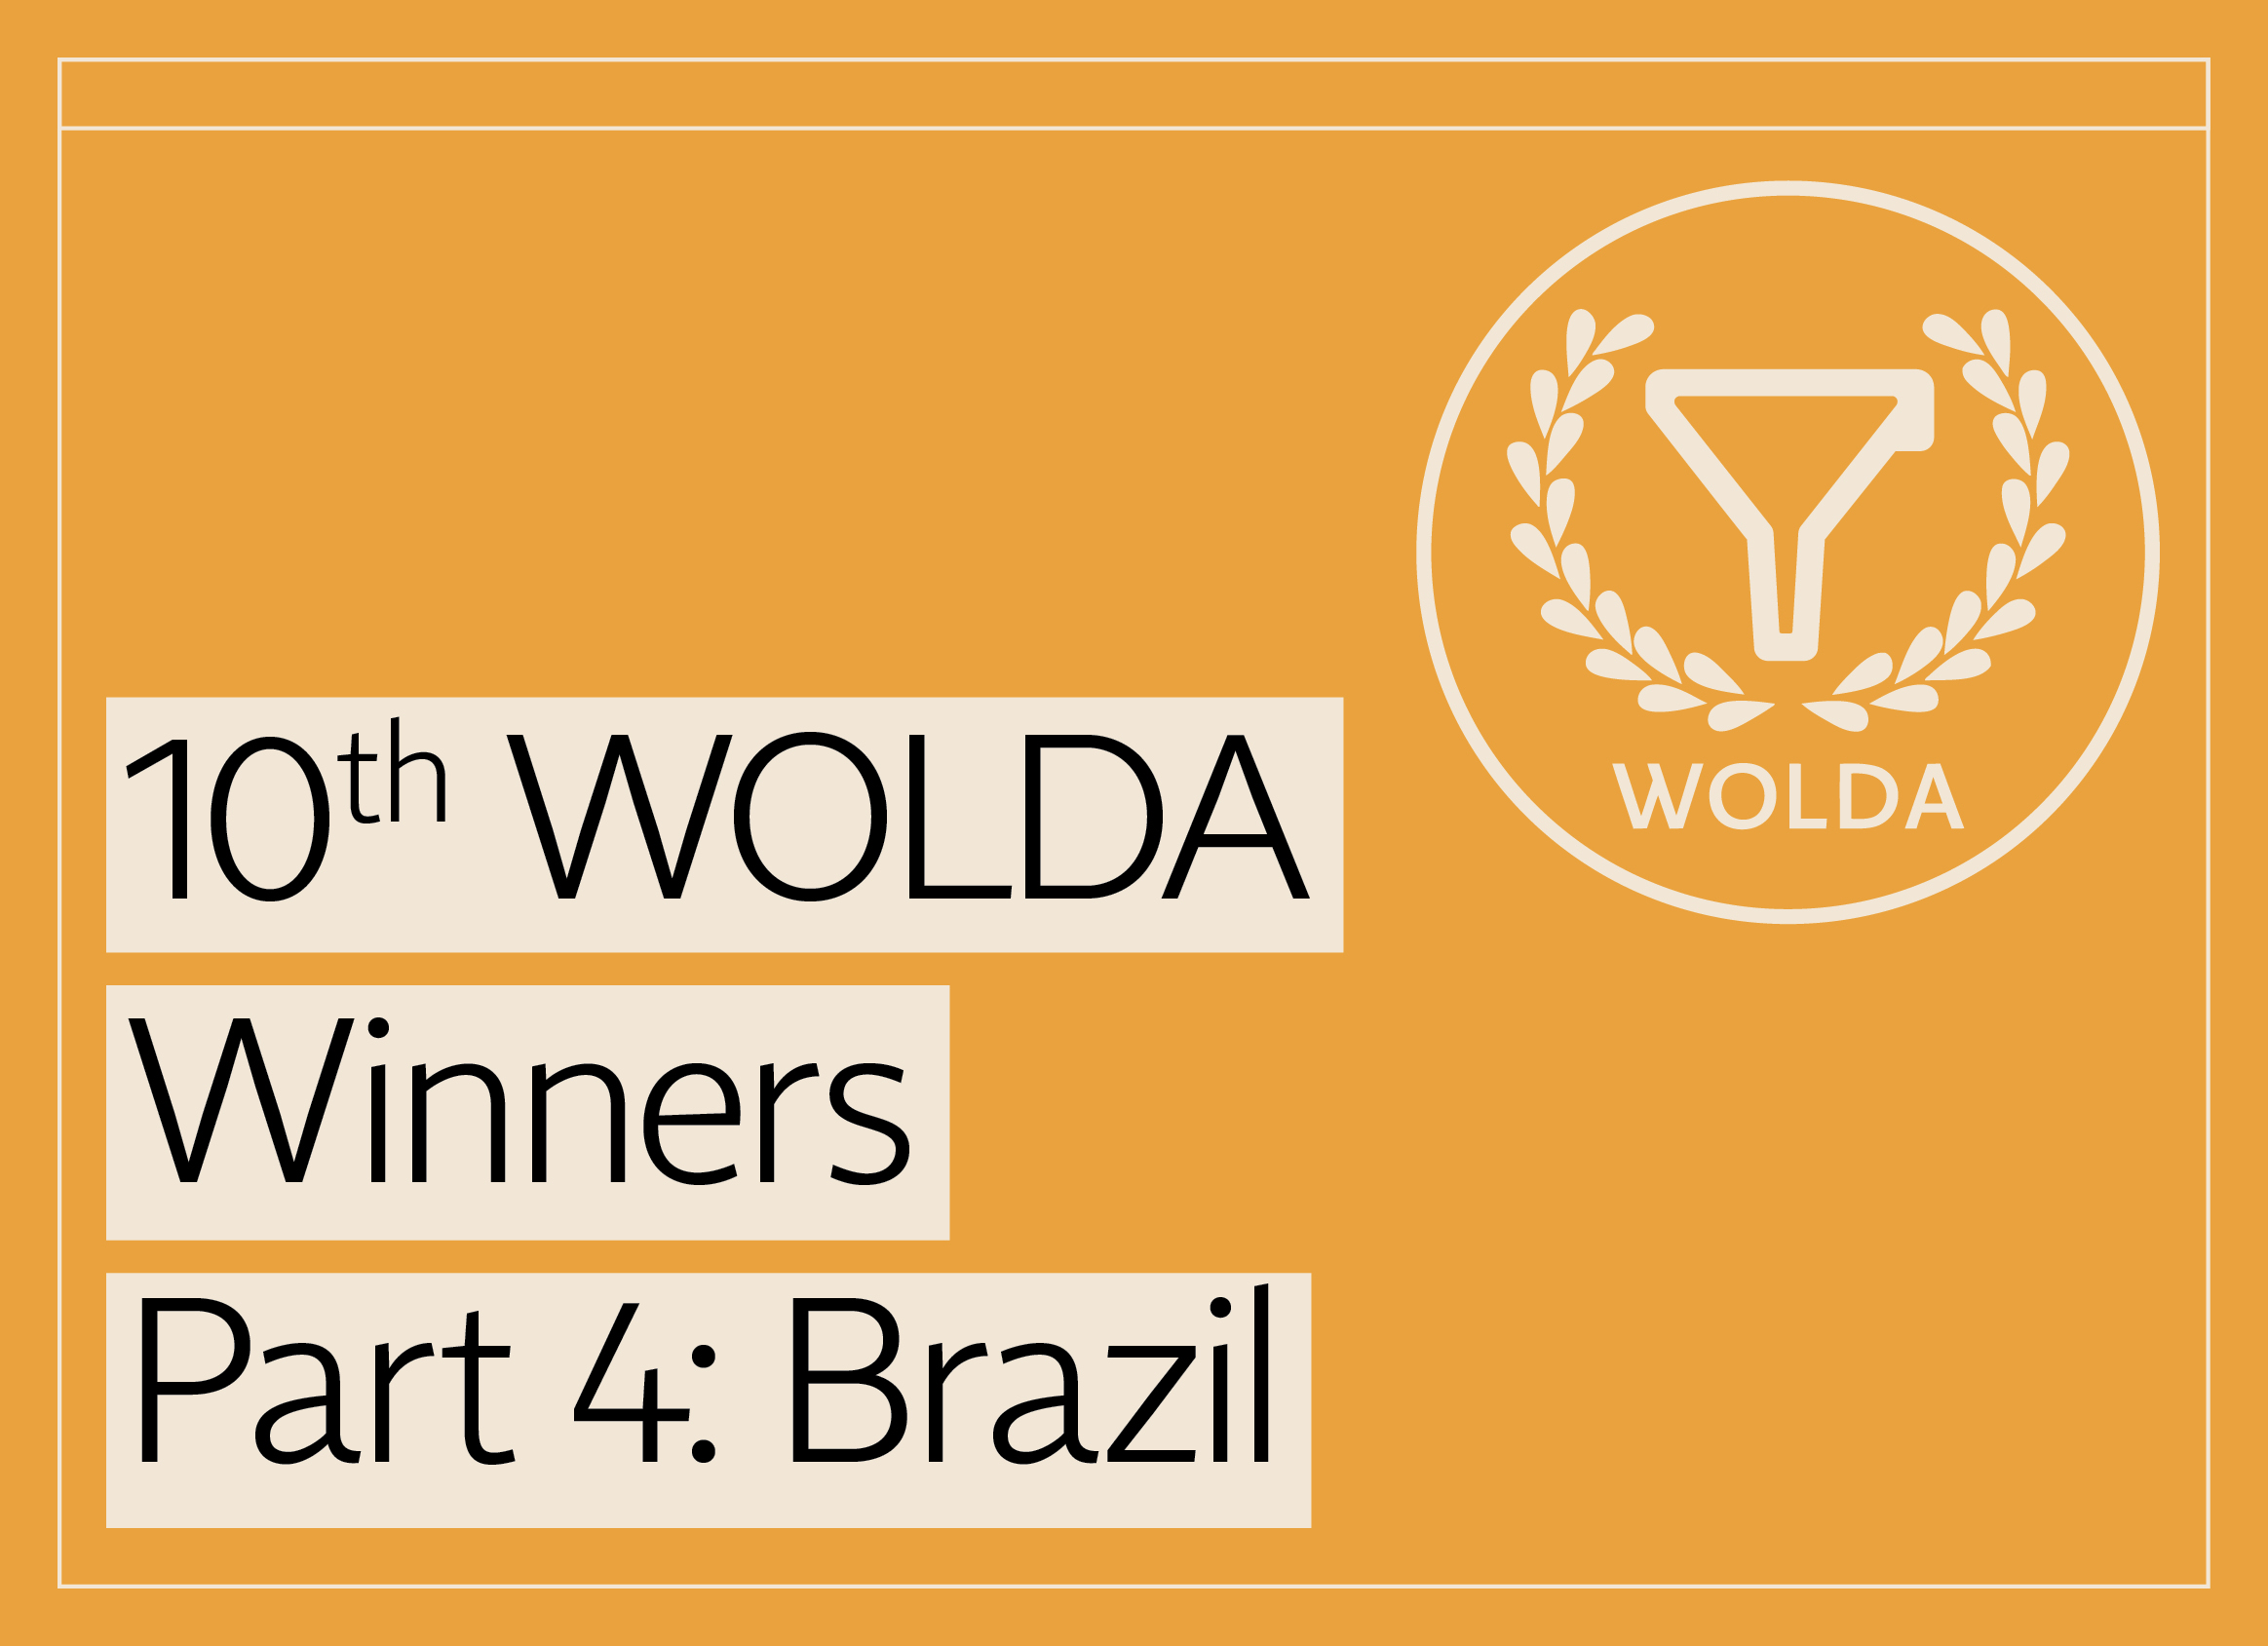 10th WOLDA Winners Part 4